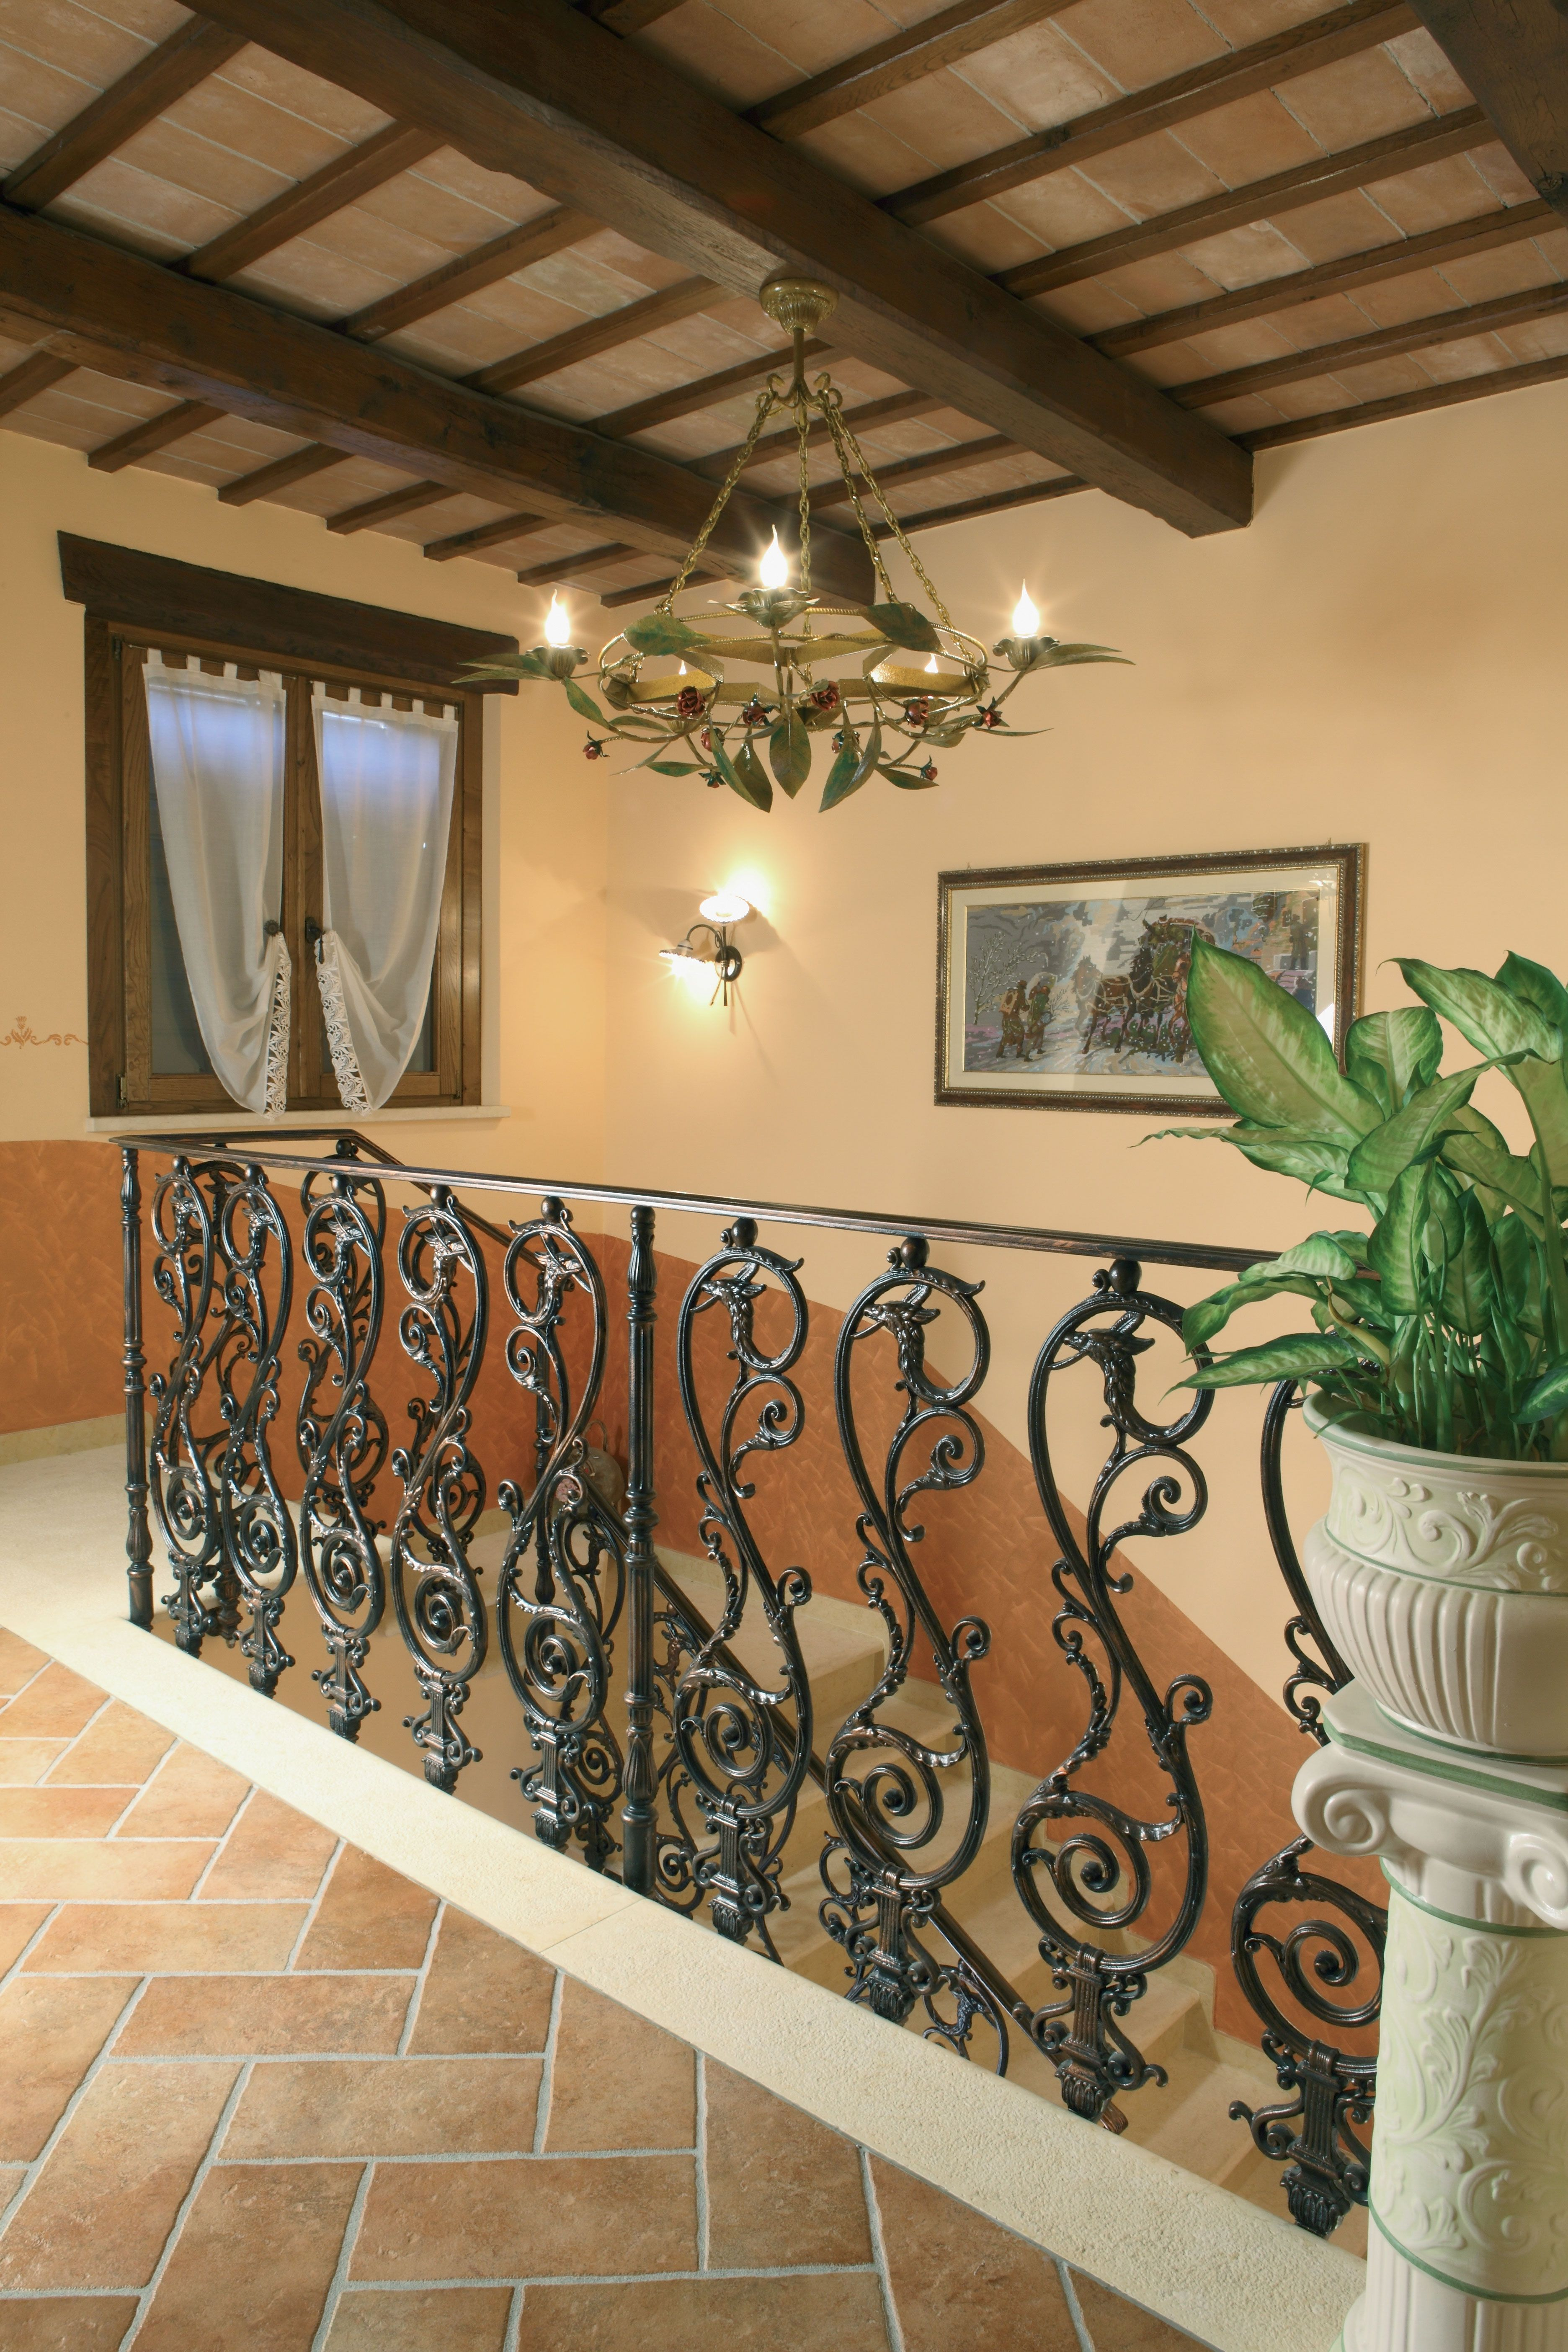 Cast-iron railings –  9502.0544VS http://www.modus.sm/en/products/railings/cast-iron-railings/9502-0544vsls/9502-0544vs.asp?ID0=1291&ID0_=1291&ID1=1312&ID1_=1312&ID2=1339&ID2_=1339&ID3=1655&ID3_=1655&IDProdotto=1344&L=EN  #Modus #ModusRailings #indoorfurniture #inspiration #castiron #railing #castironrailing #ghisa #ringhiera #ringhierainghisa #floraldecoration #grey #balconies #design #architecture #follow